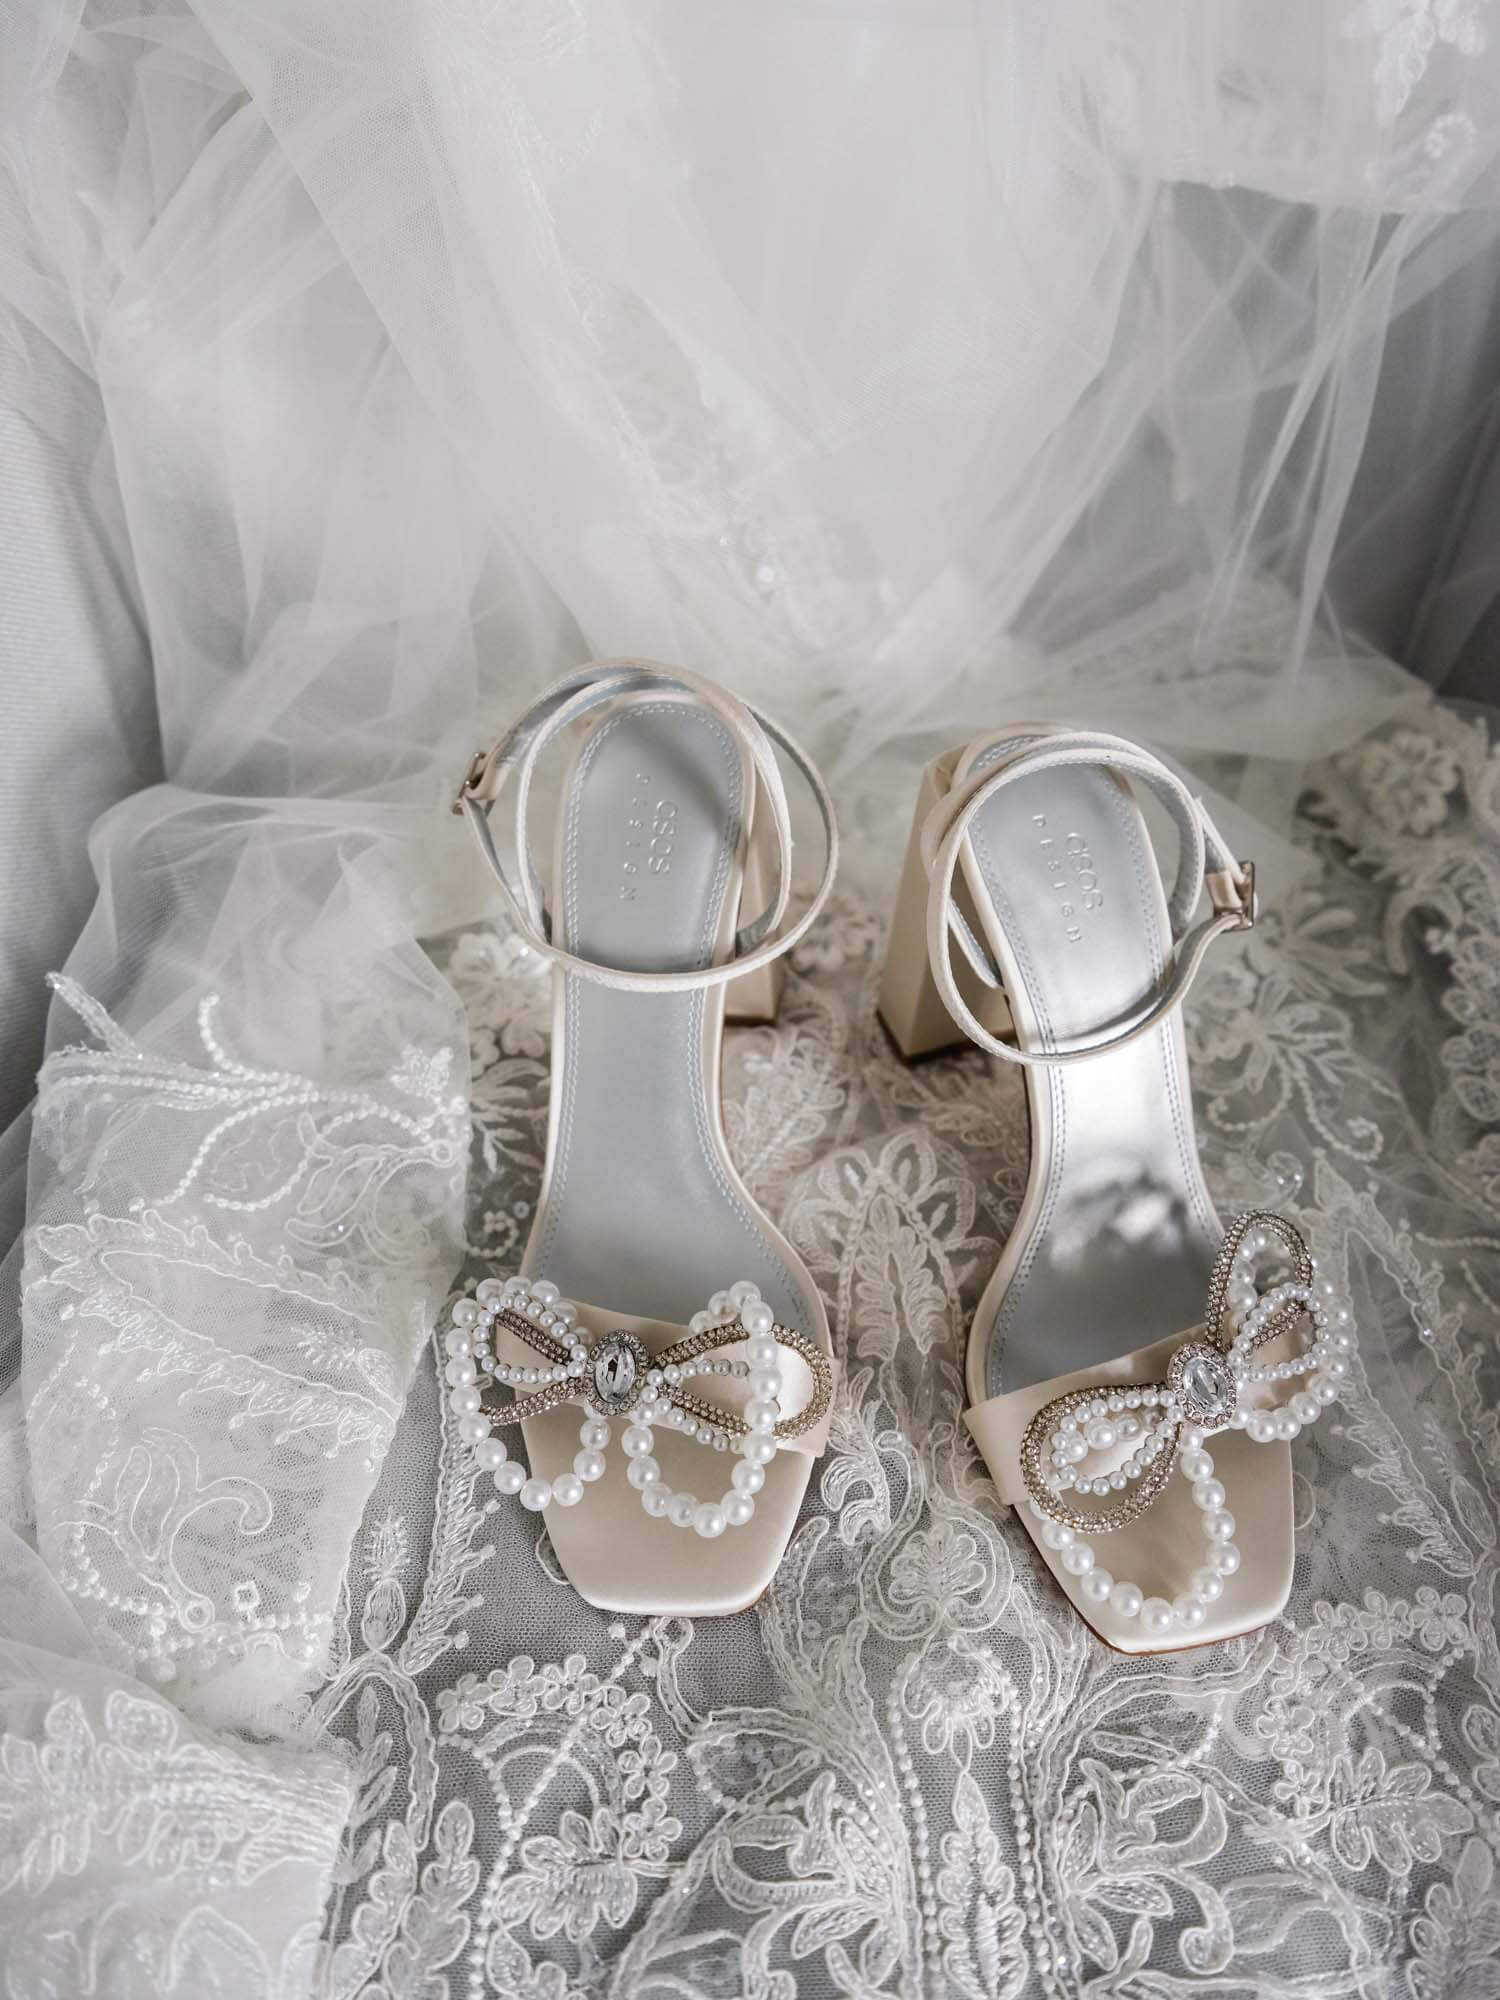 Bride's white shoes on veil-covered chair